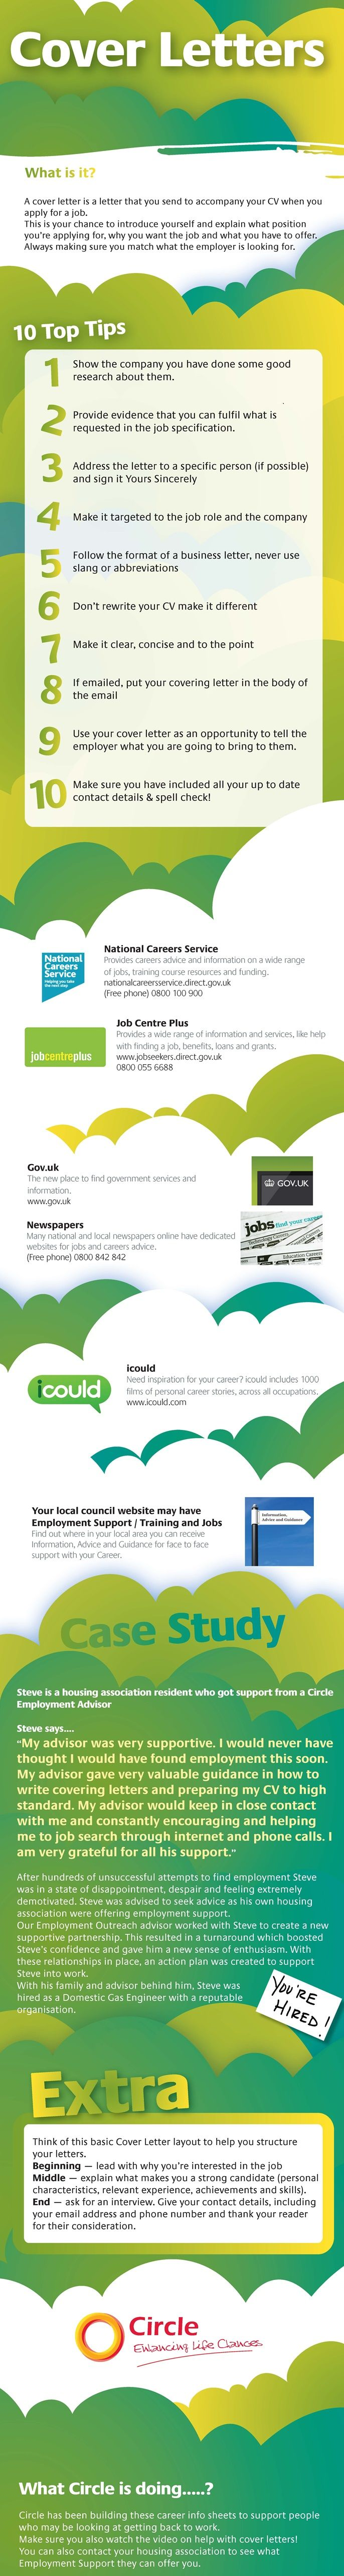 Top 10 Tips to Writing a Great Cover Letter [INFOGRAPHIC] #coverletter #careers